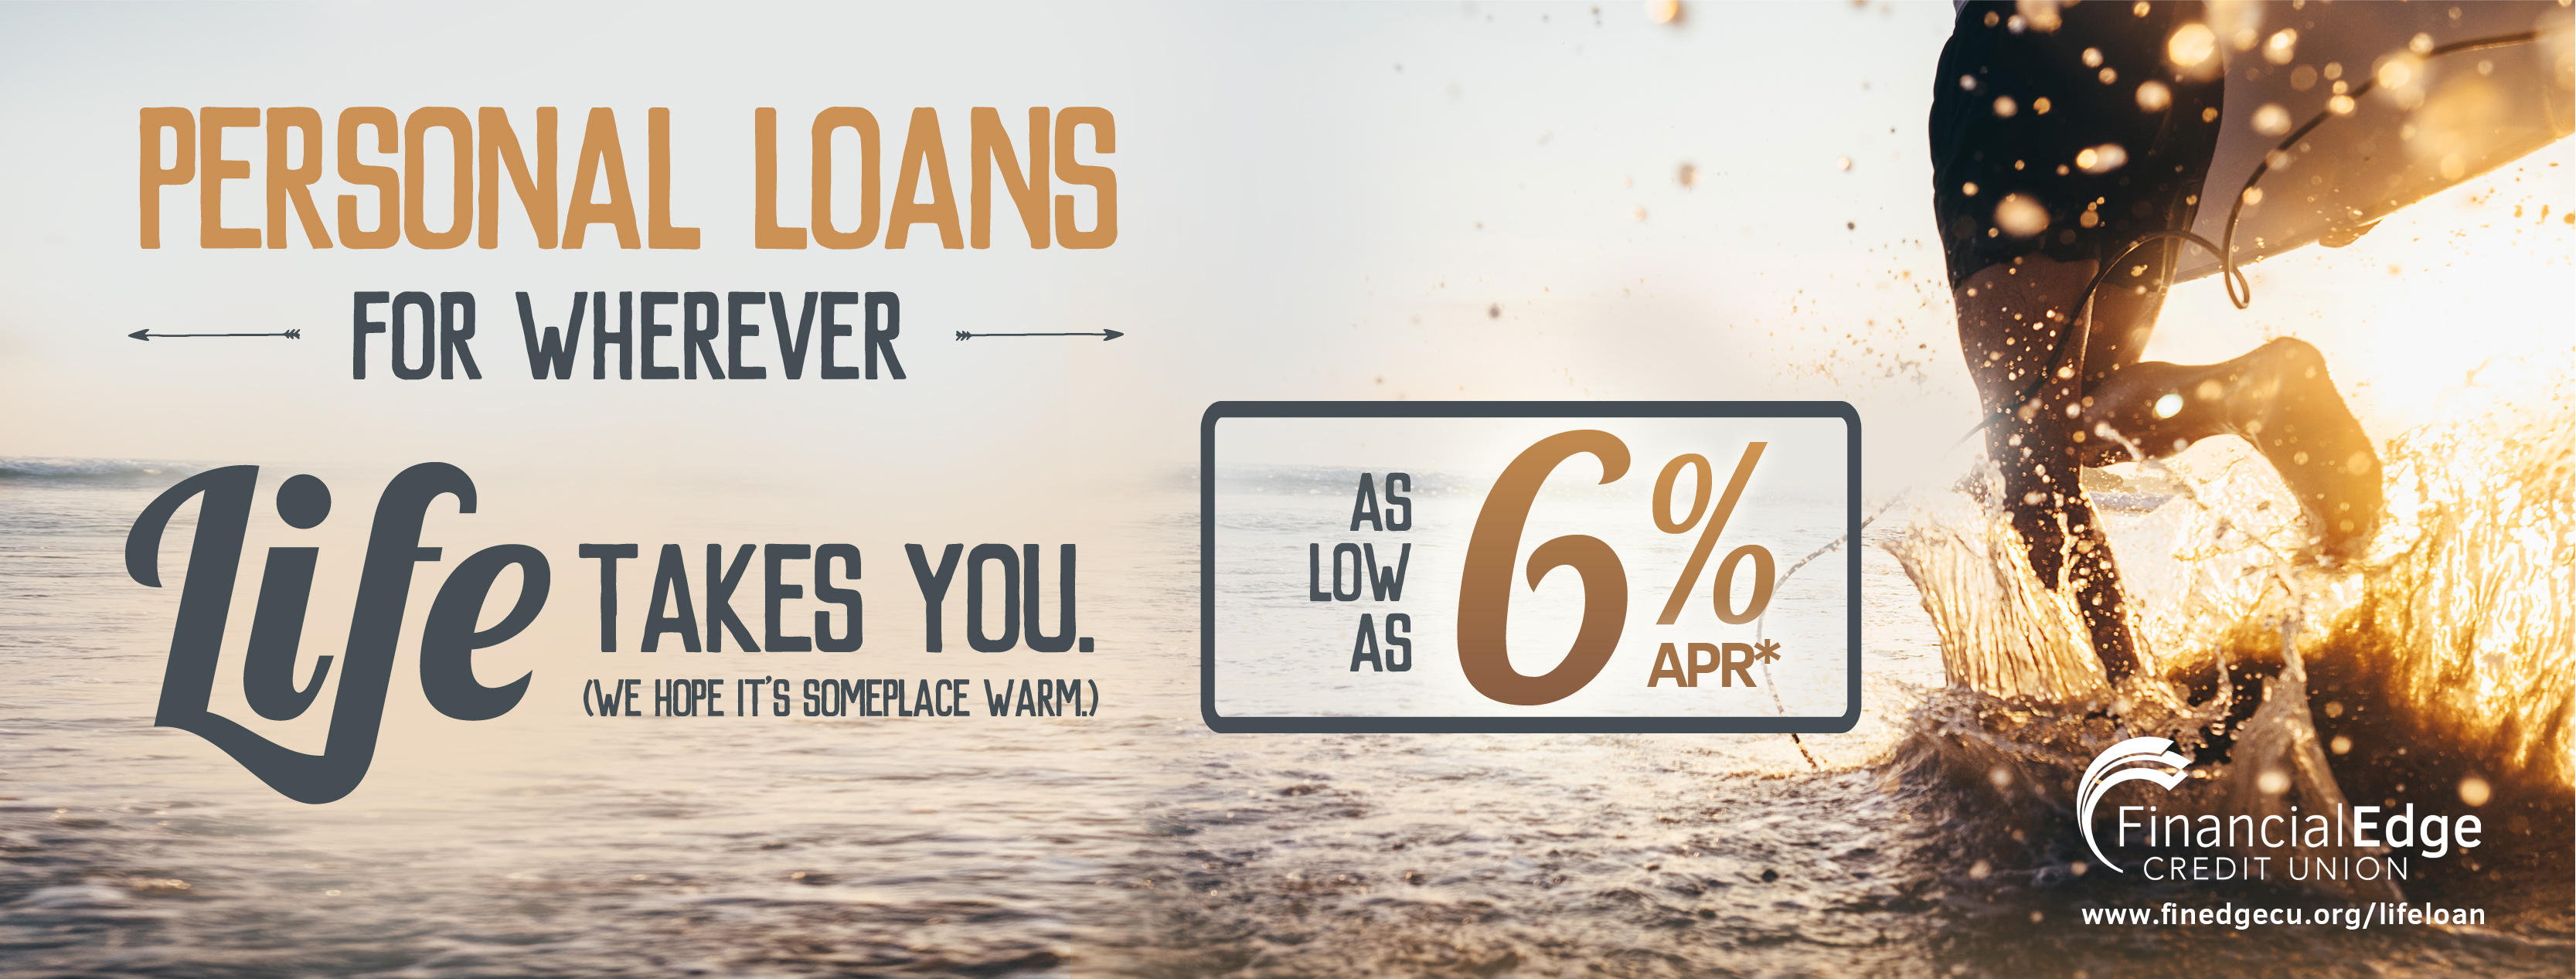 Personal Loans for Wherever Life Takes You